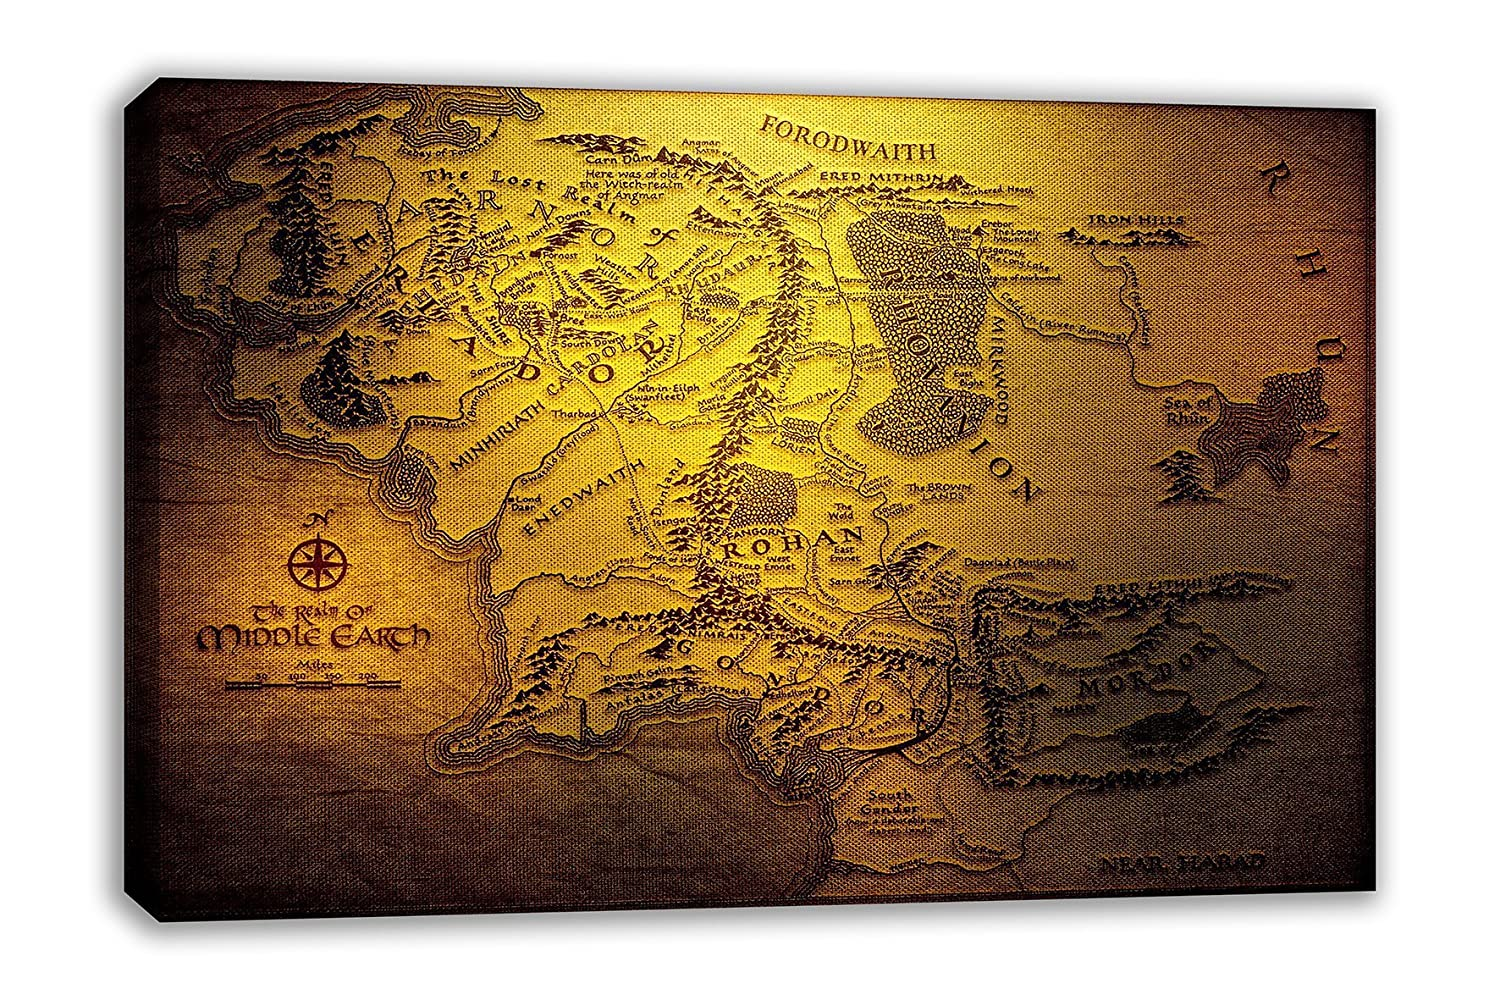 Amazon.com: THE HOBBIT LORD OF THE RINGS REALM OF MIDDLE EARTH ...